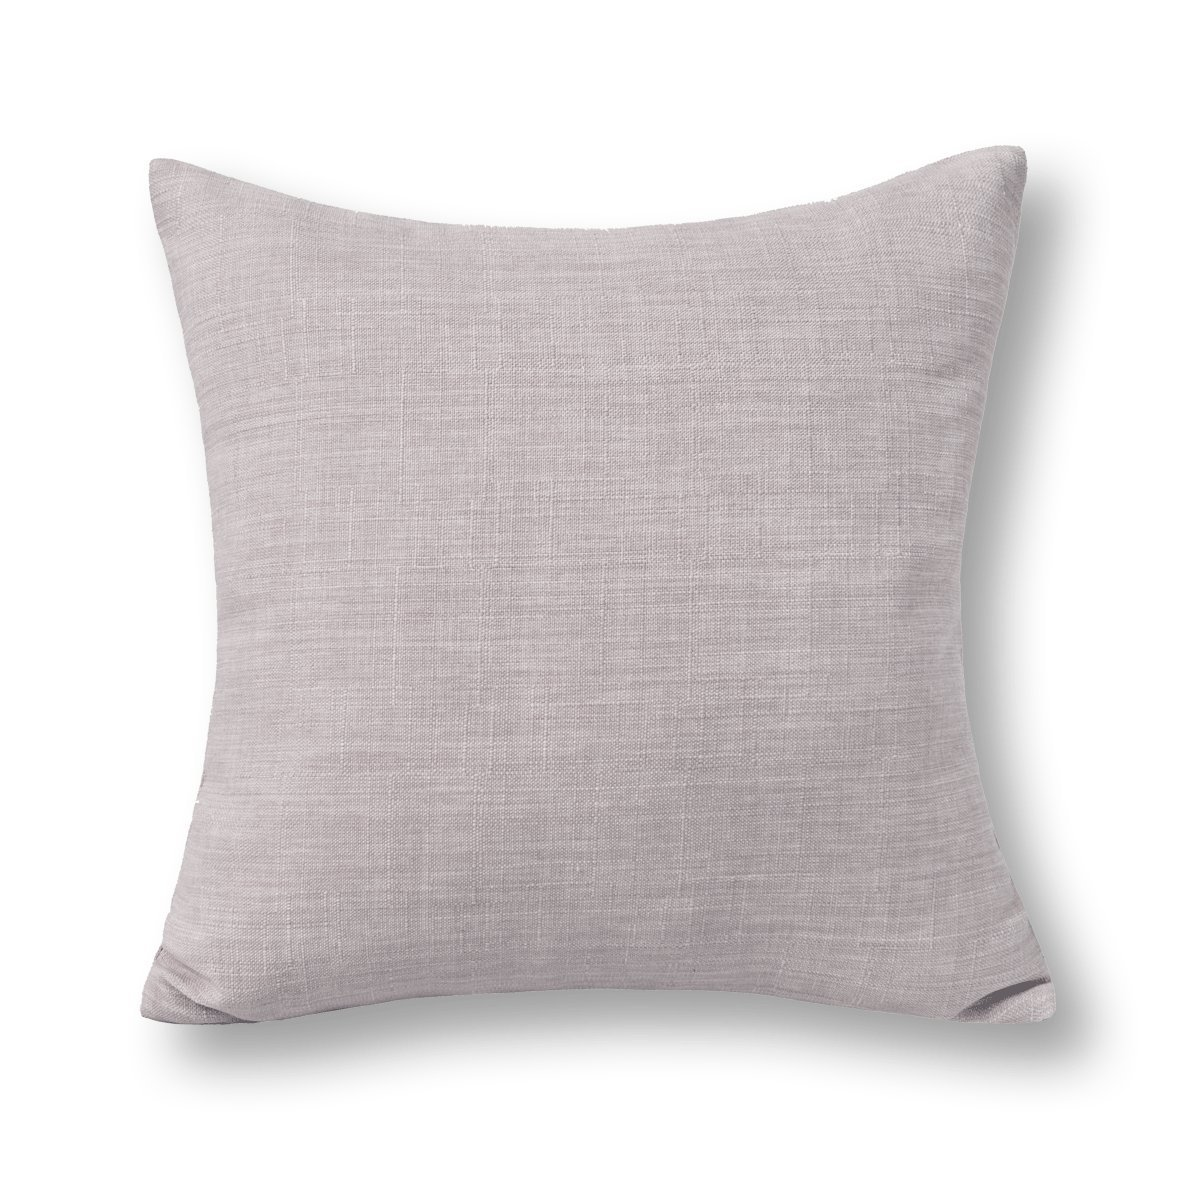 Jeanerlor Faux Lined Linen Decorative Throw Pillow Case Cushion Sham Todder(Boy Girl) Square 24x24 inch (60 x 60 cm), Light Grey